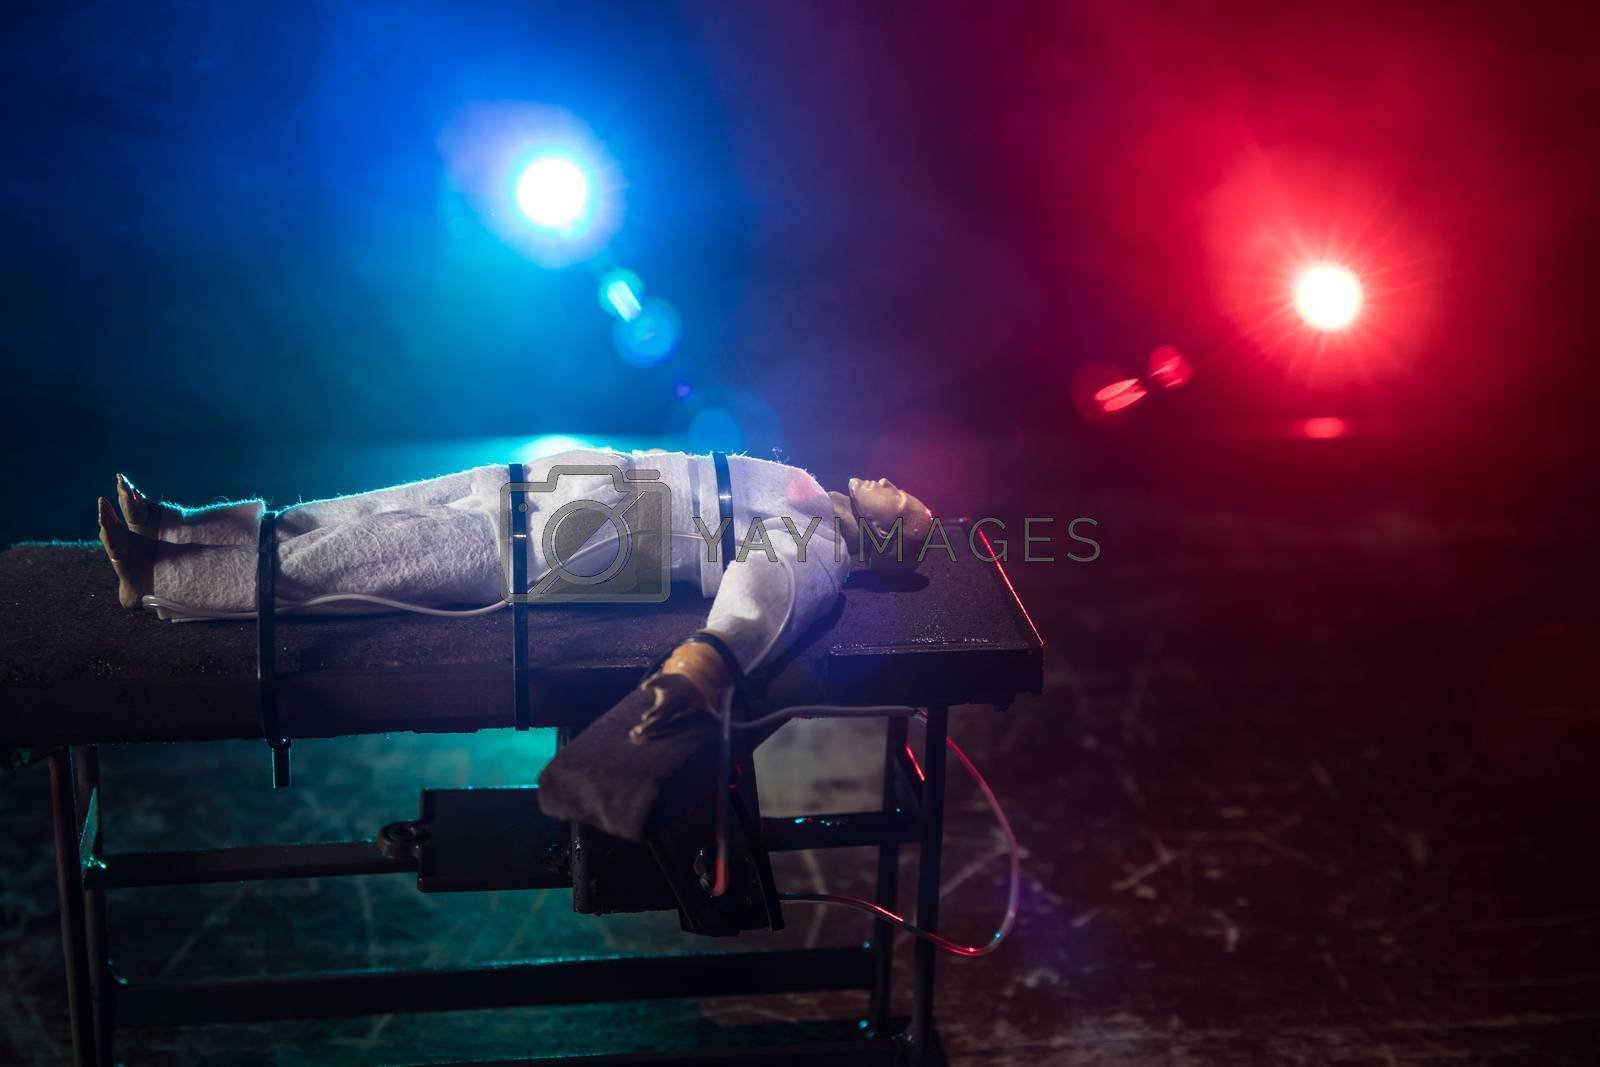 Lethal injection concept. Prisoner handcuffed to death by lethal injection. Creative artwork decoration with scale model on dark with lights.